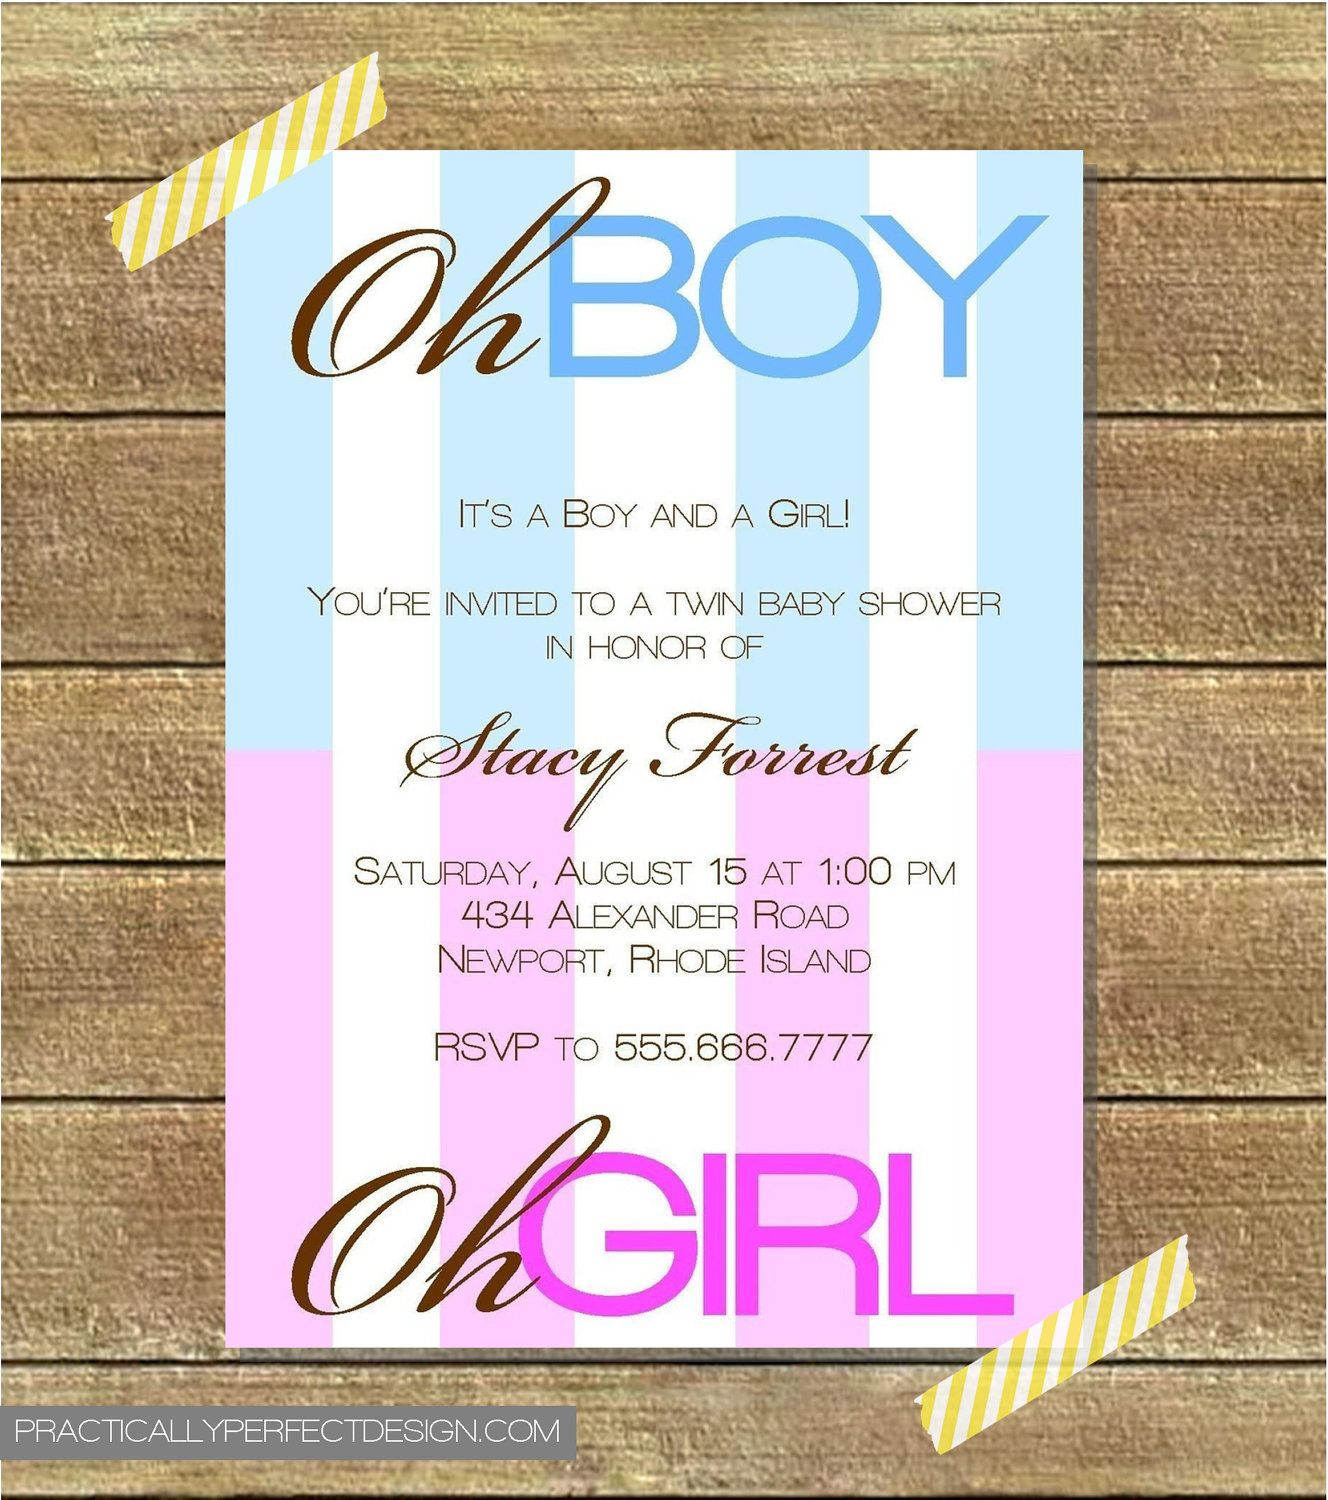 Twin Baby Shower Invitation, Boy AND Girl | Shower invitations ...